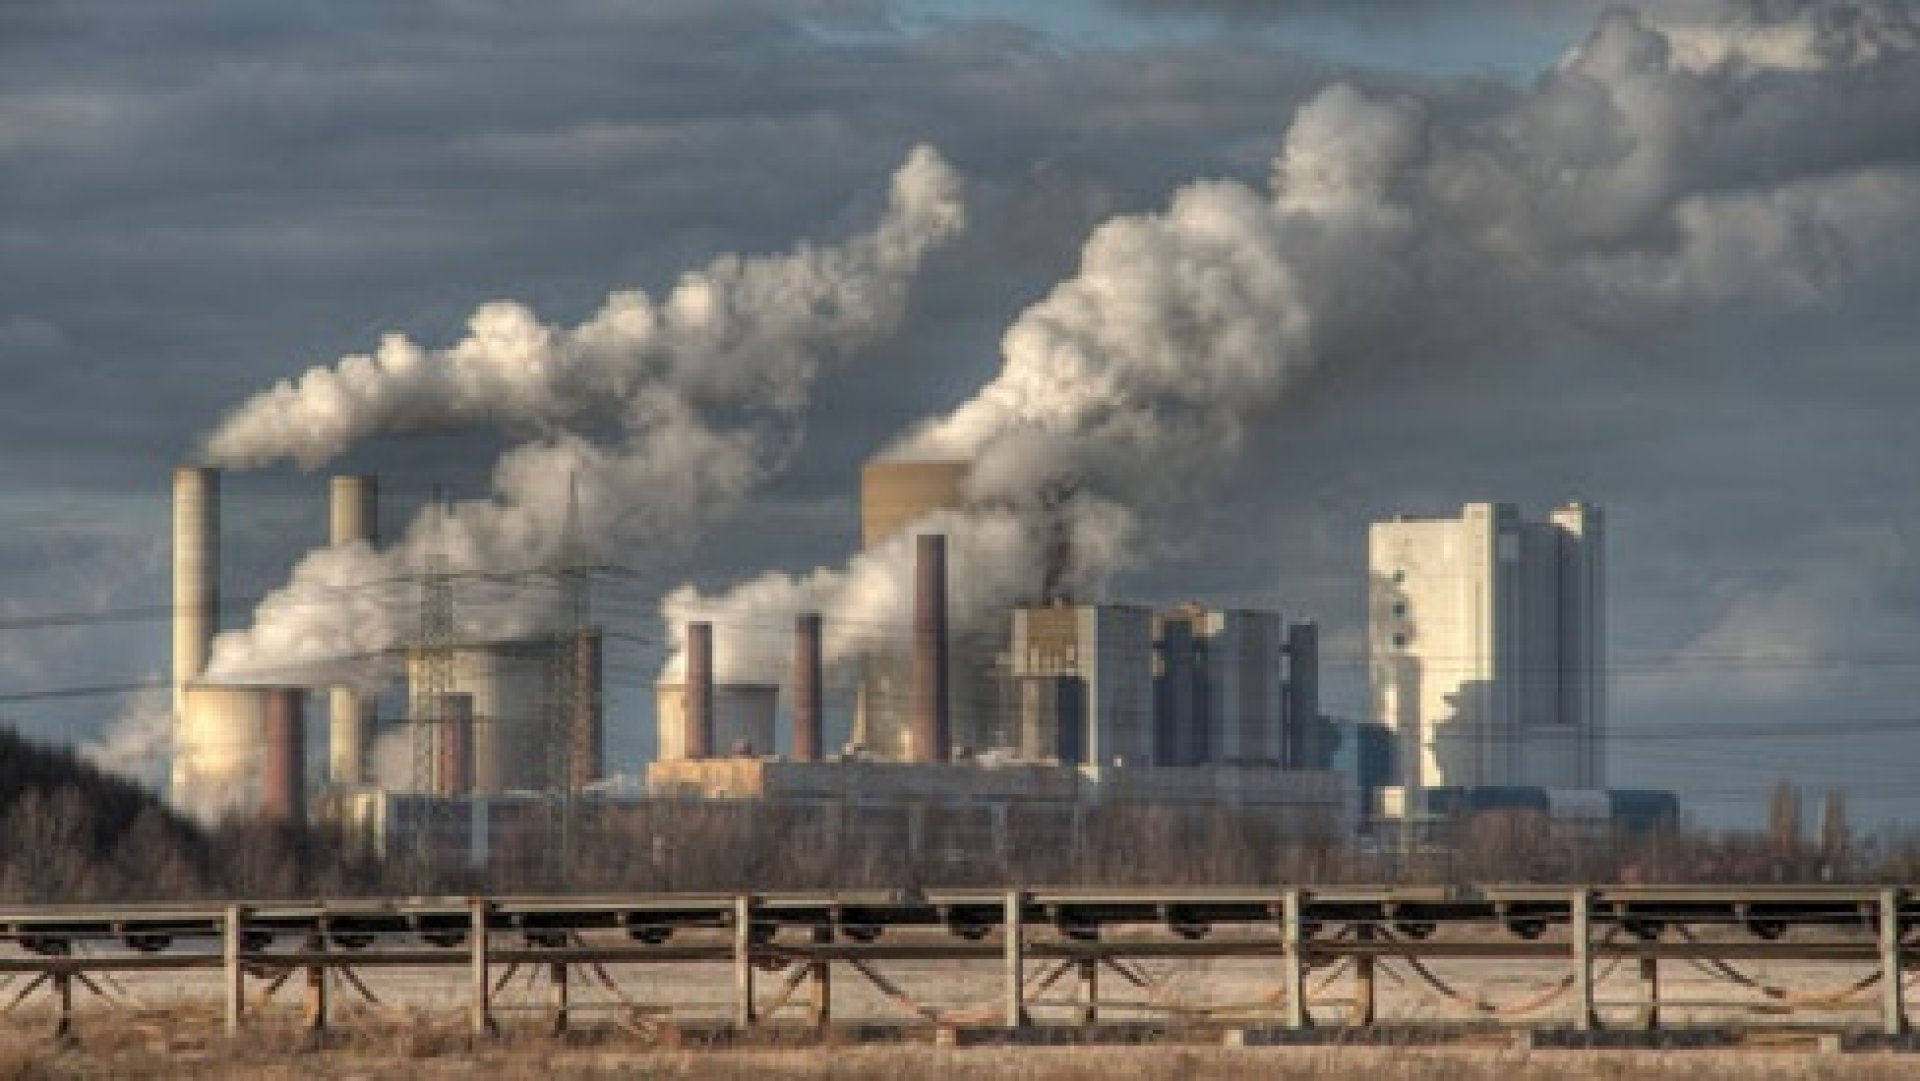 Canada to stop using coal power plants in 14 years